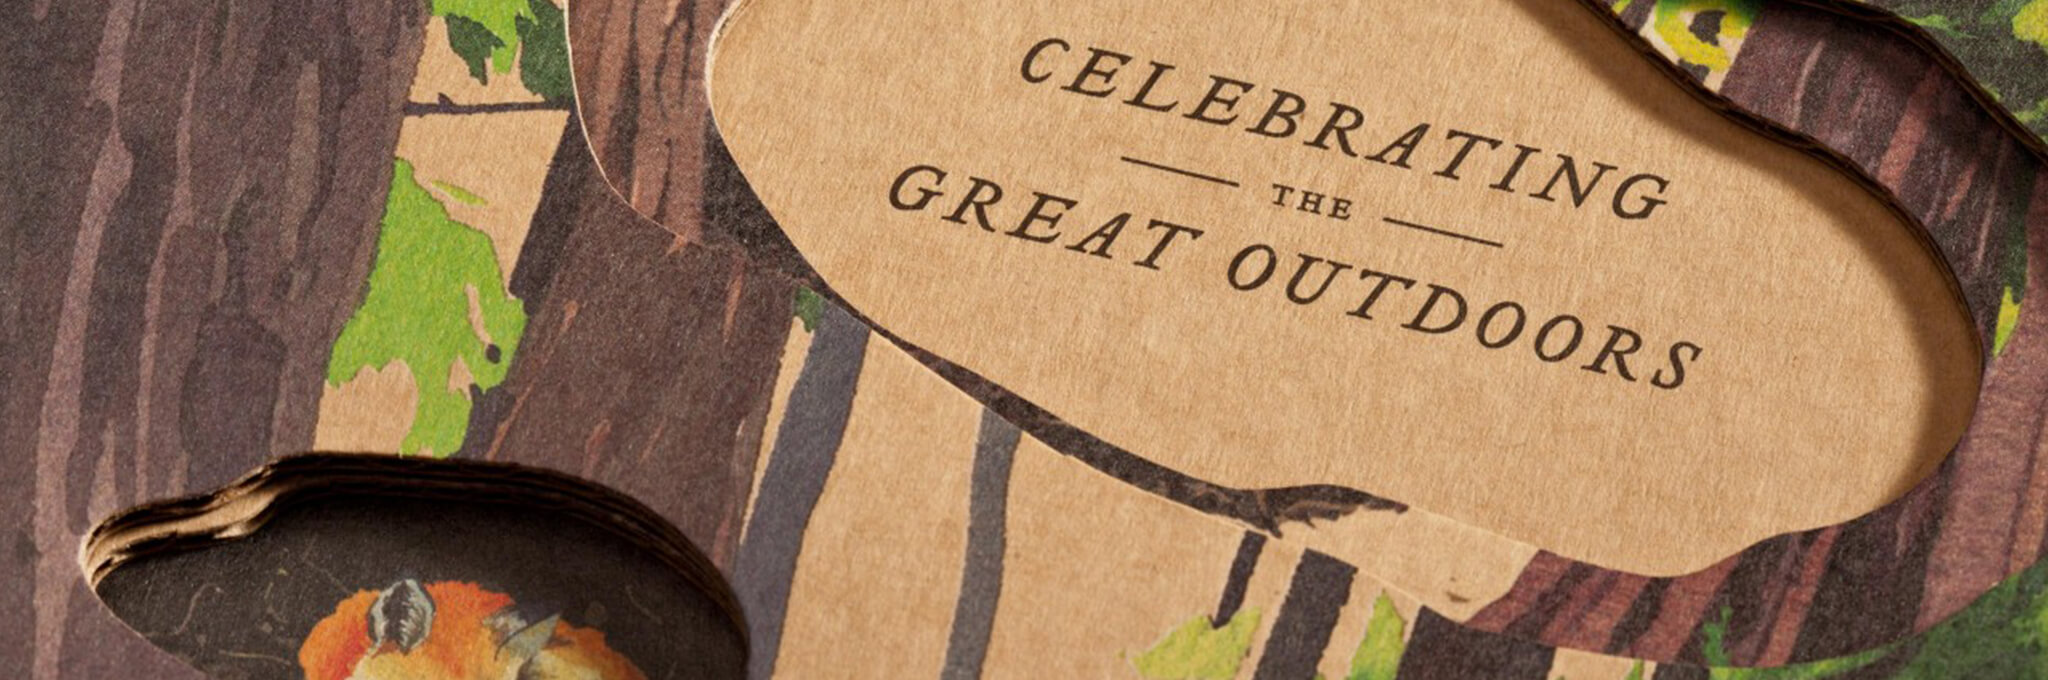 "Close-up detail of ""Celebrating the Great Outdoors"" painted cardboard invitation"